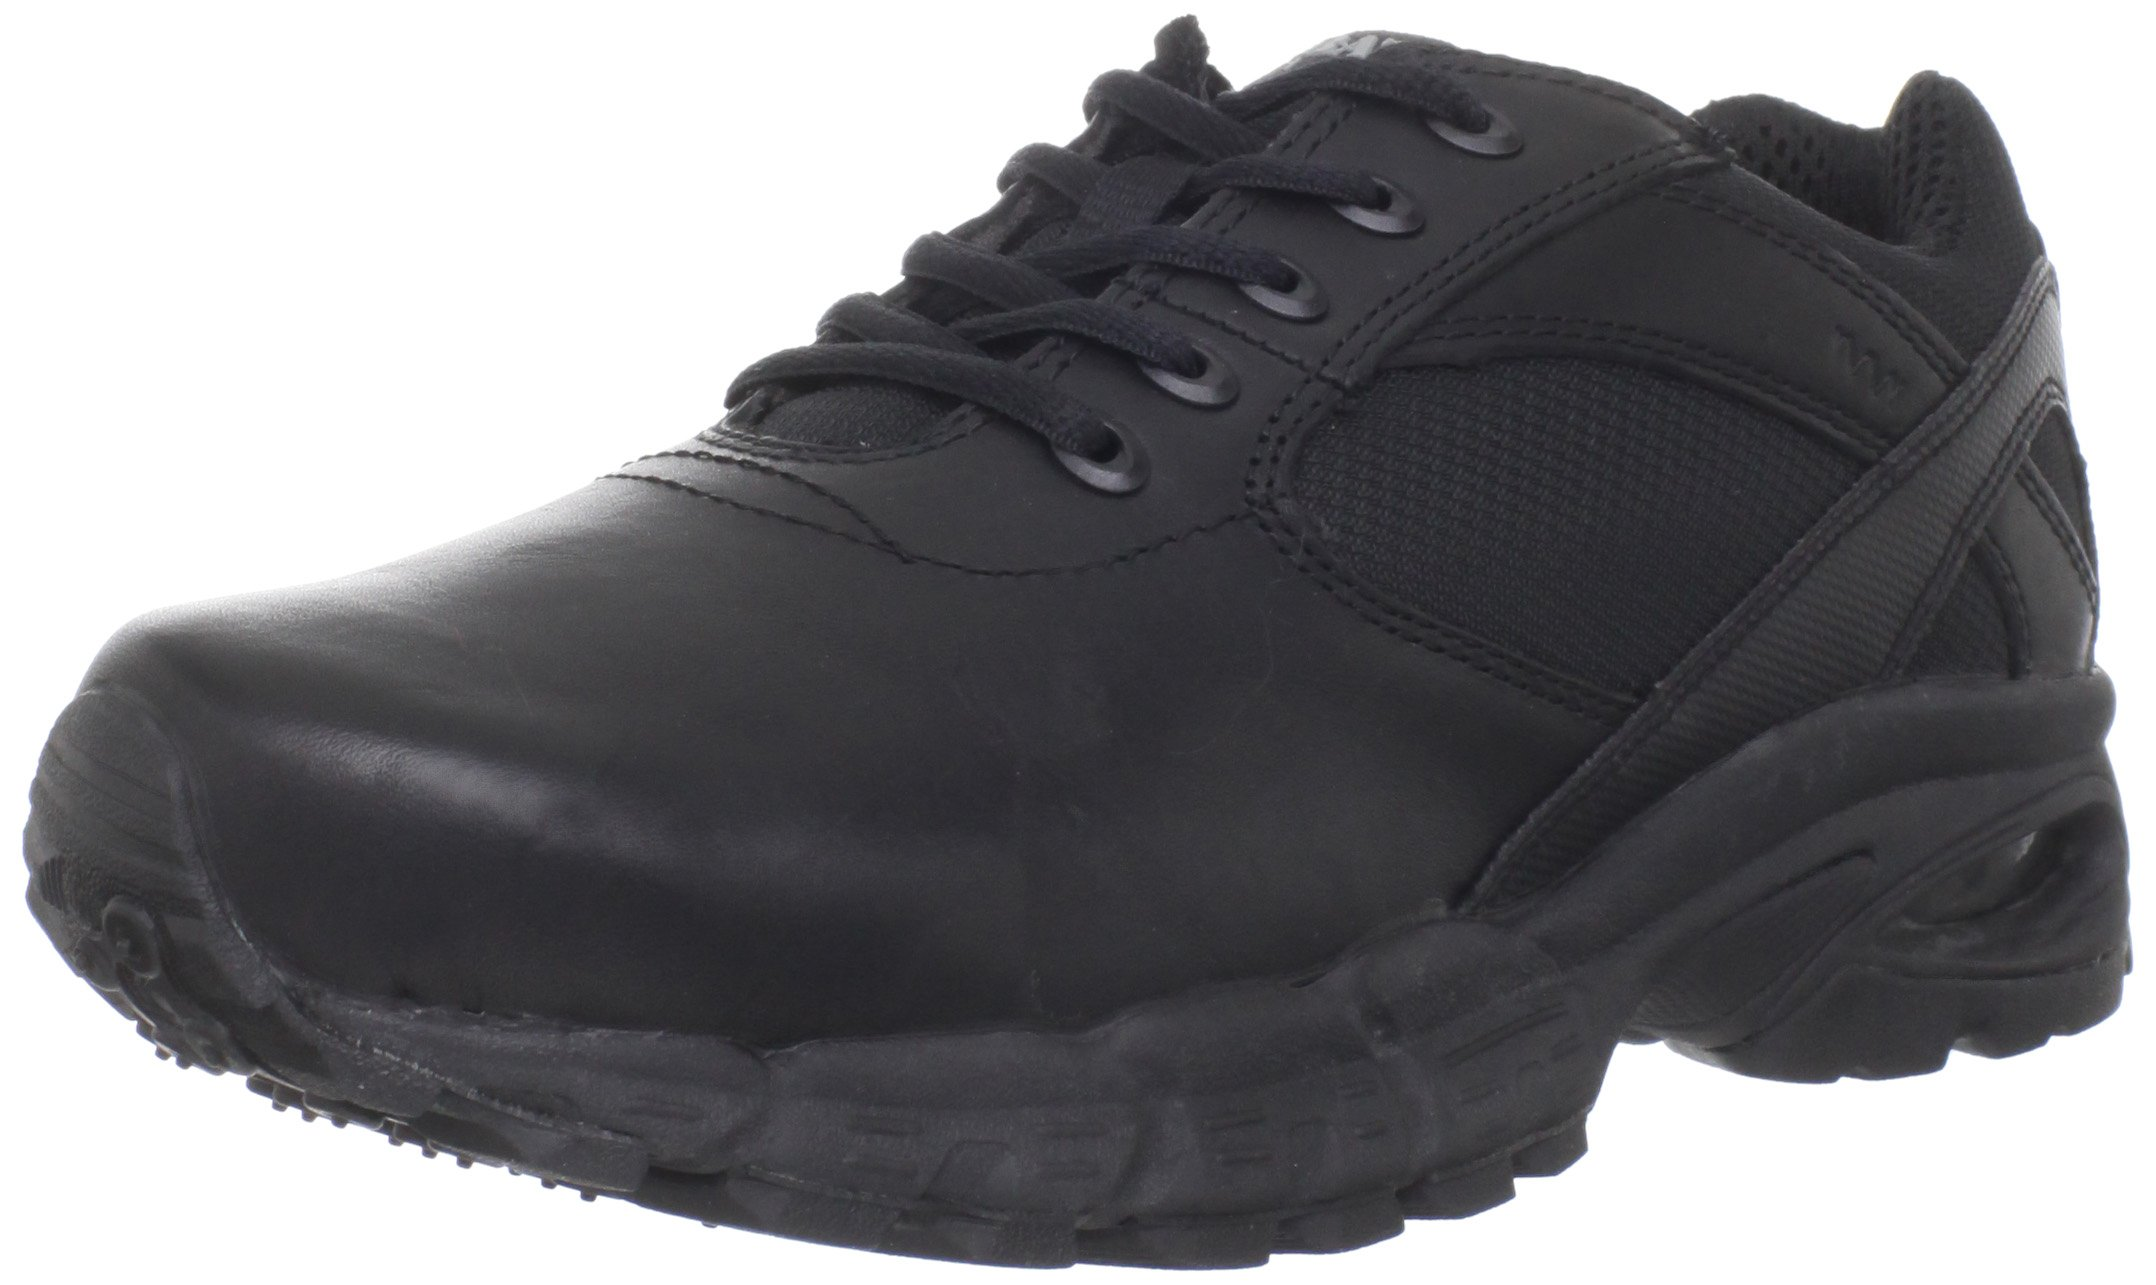 Bates Men's Delta II Sport ICS Technology Uniform Shoe, Black, 10.5 M US